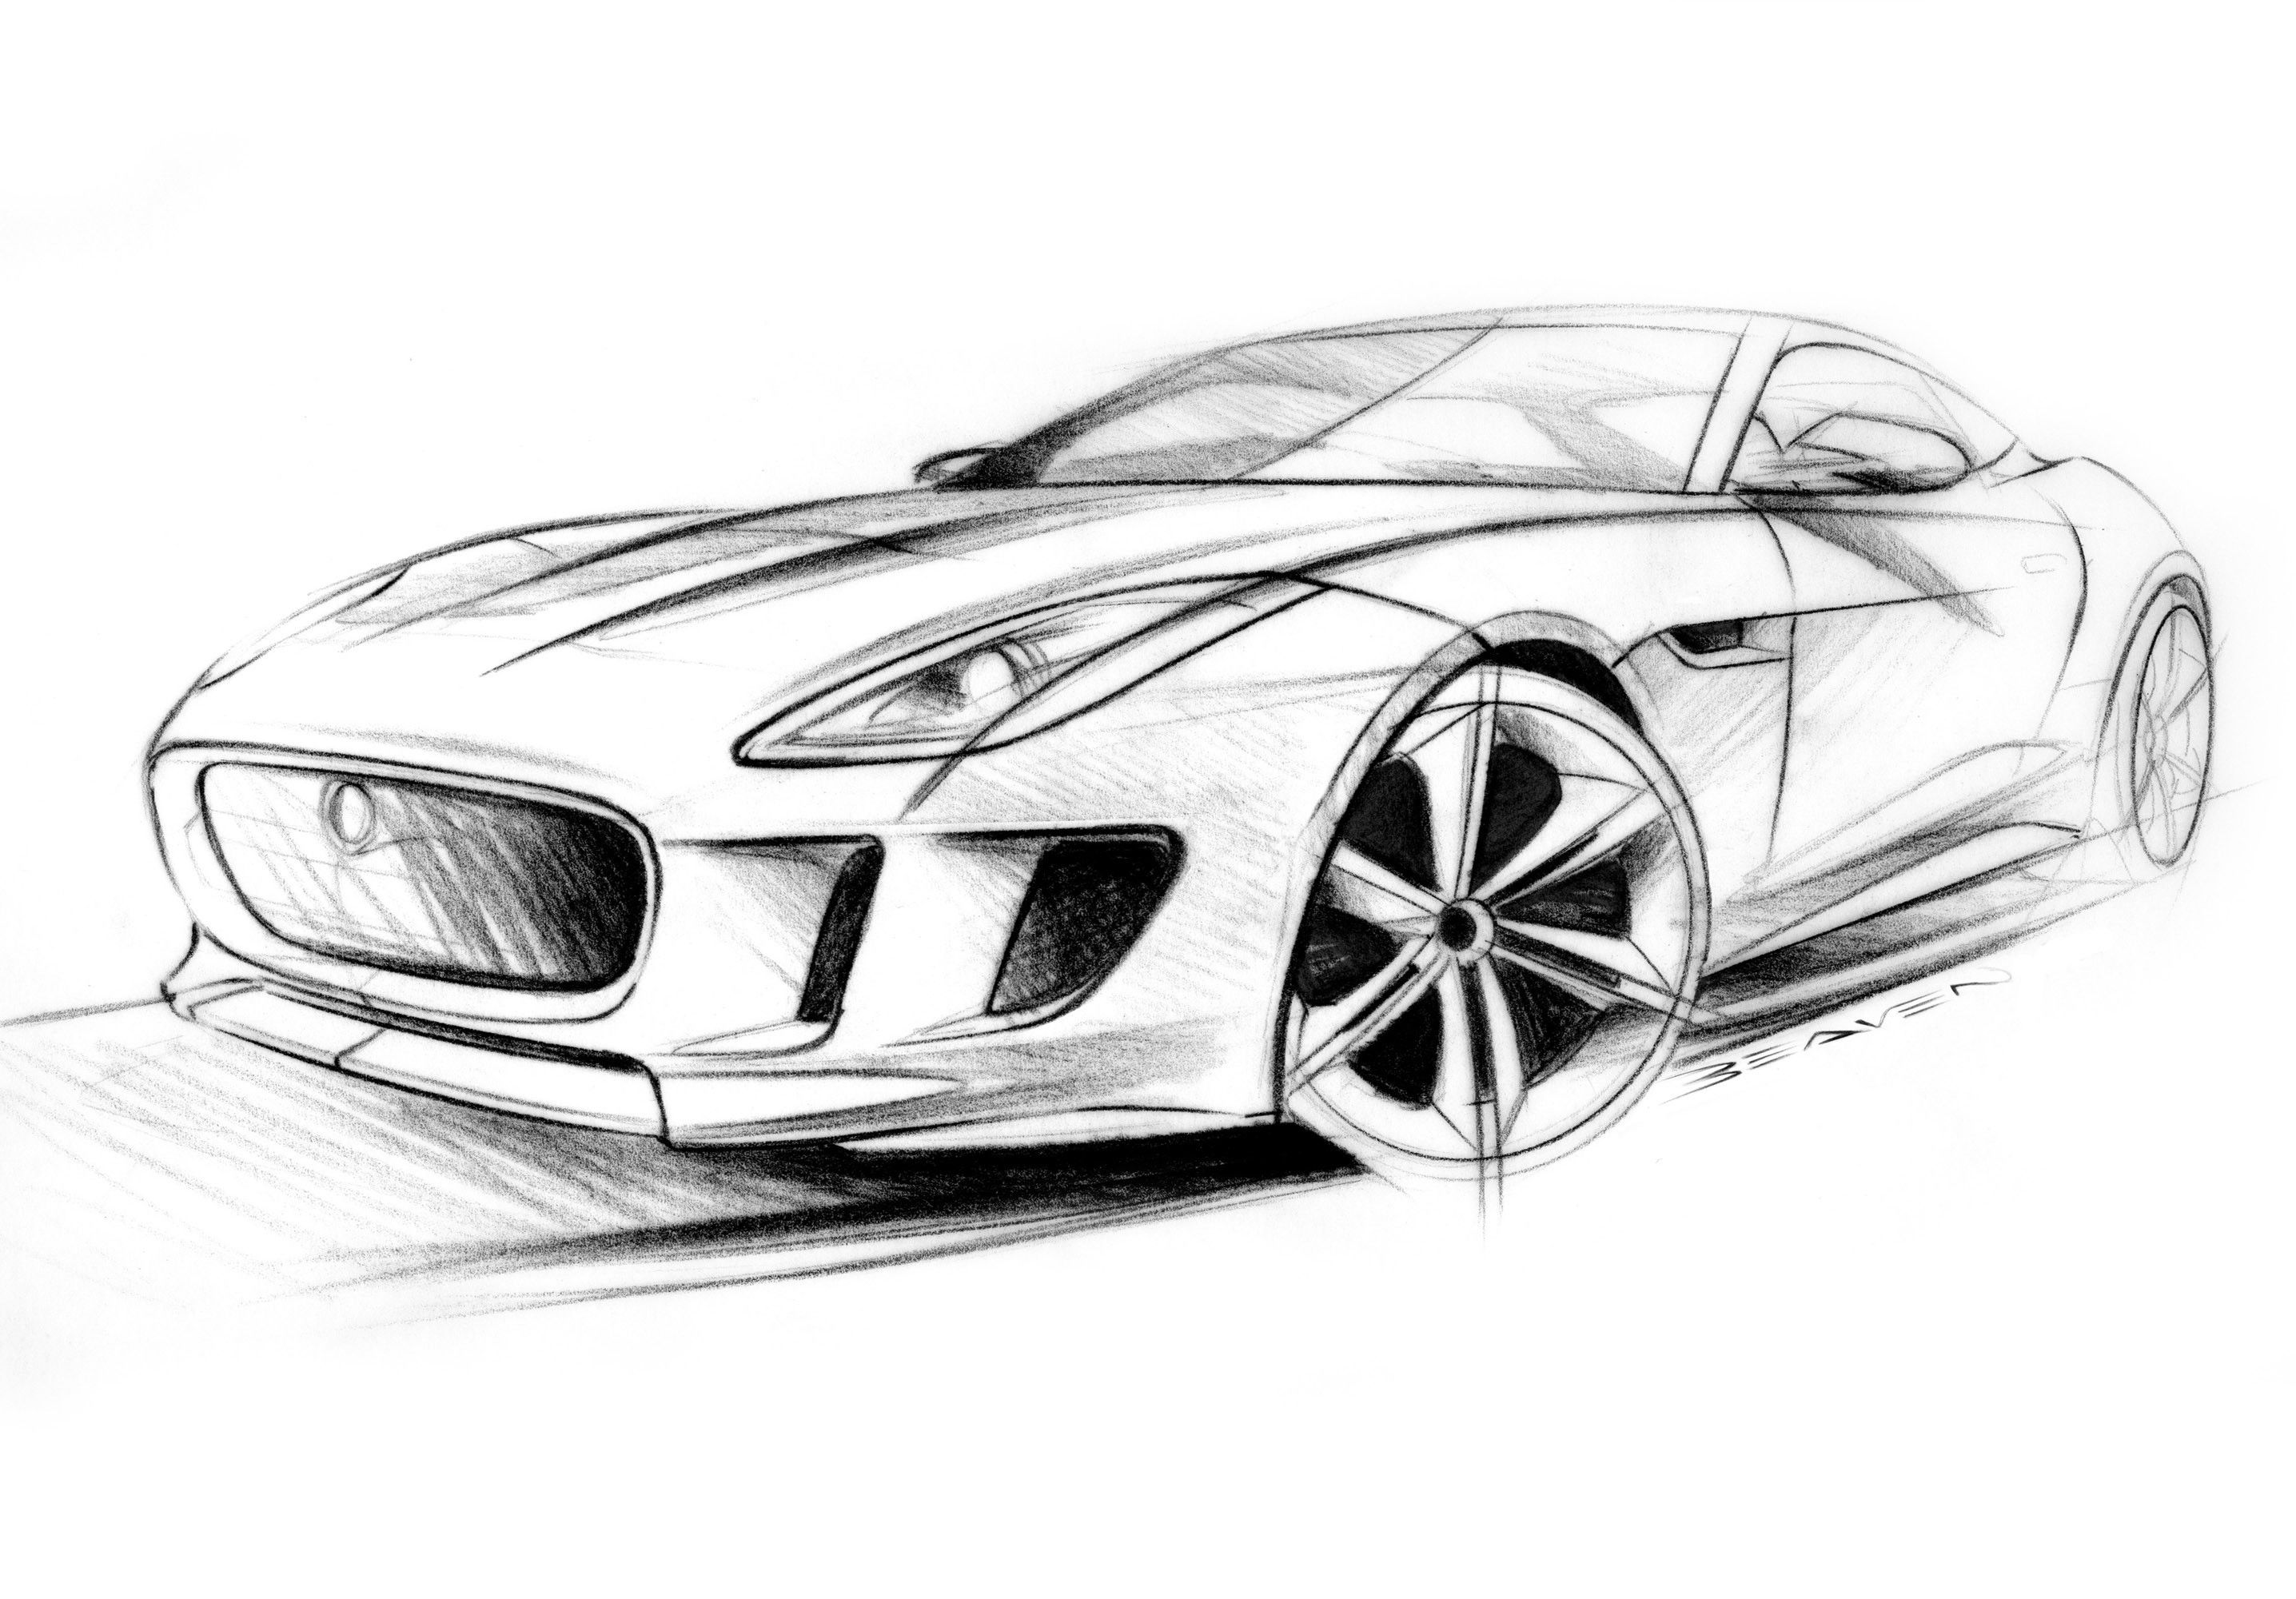 drawings send us messages, symbols and feeling, drawings tell stories and they have hidden meanings. Car Sketch Wallpapers Top Free Car Sketch Backgrounds Wallpaperaccess